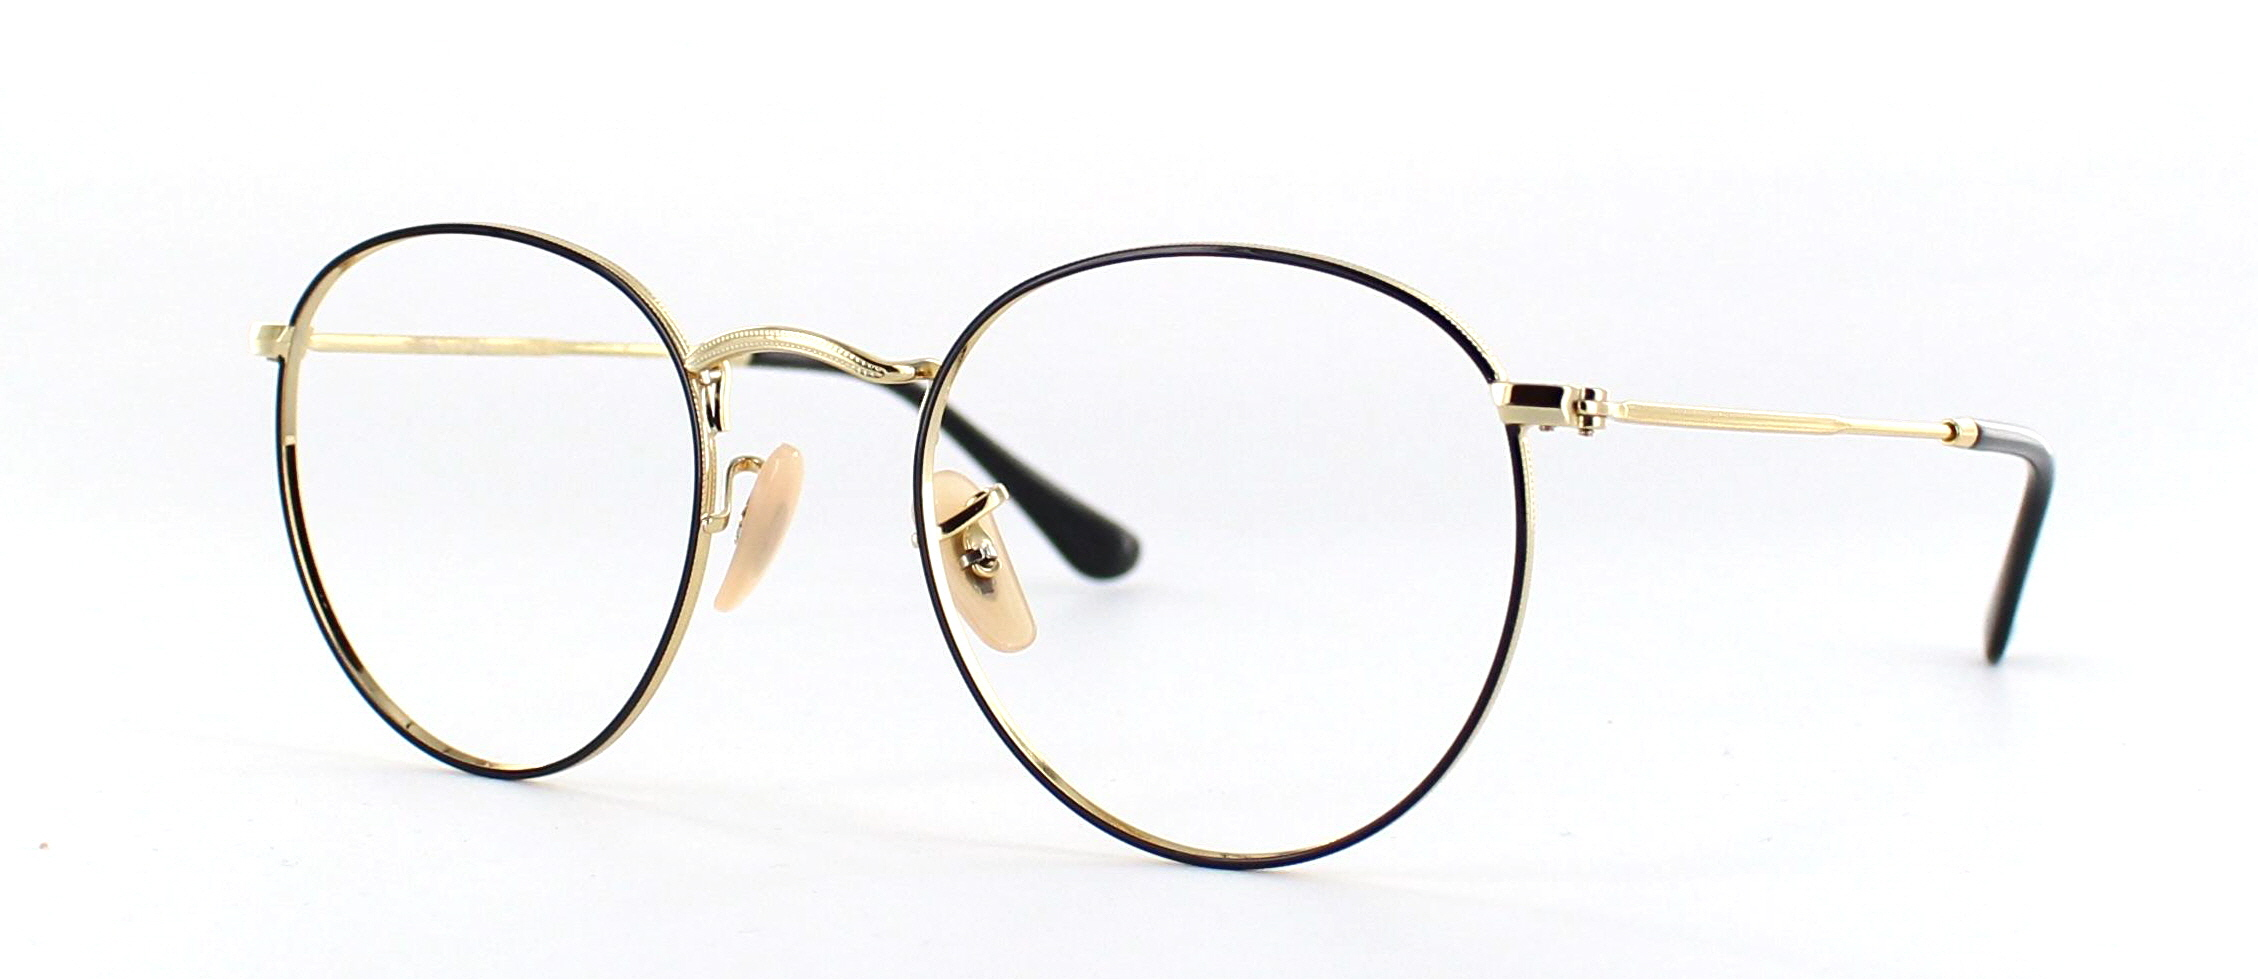 Ray Ban round metal side